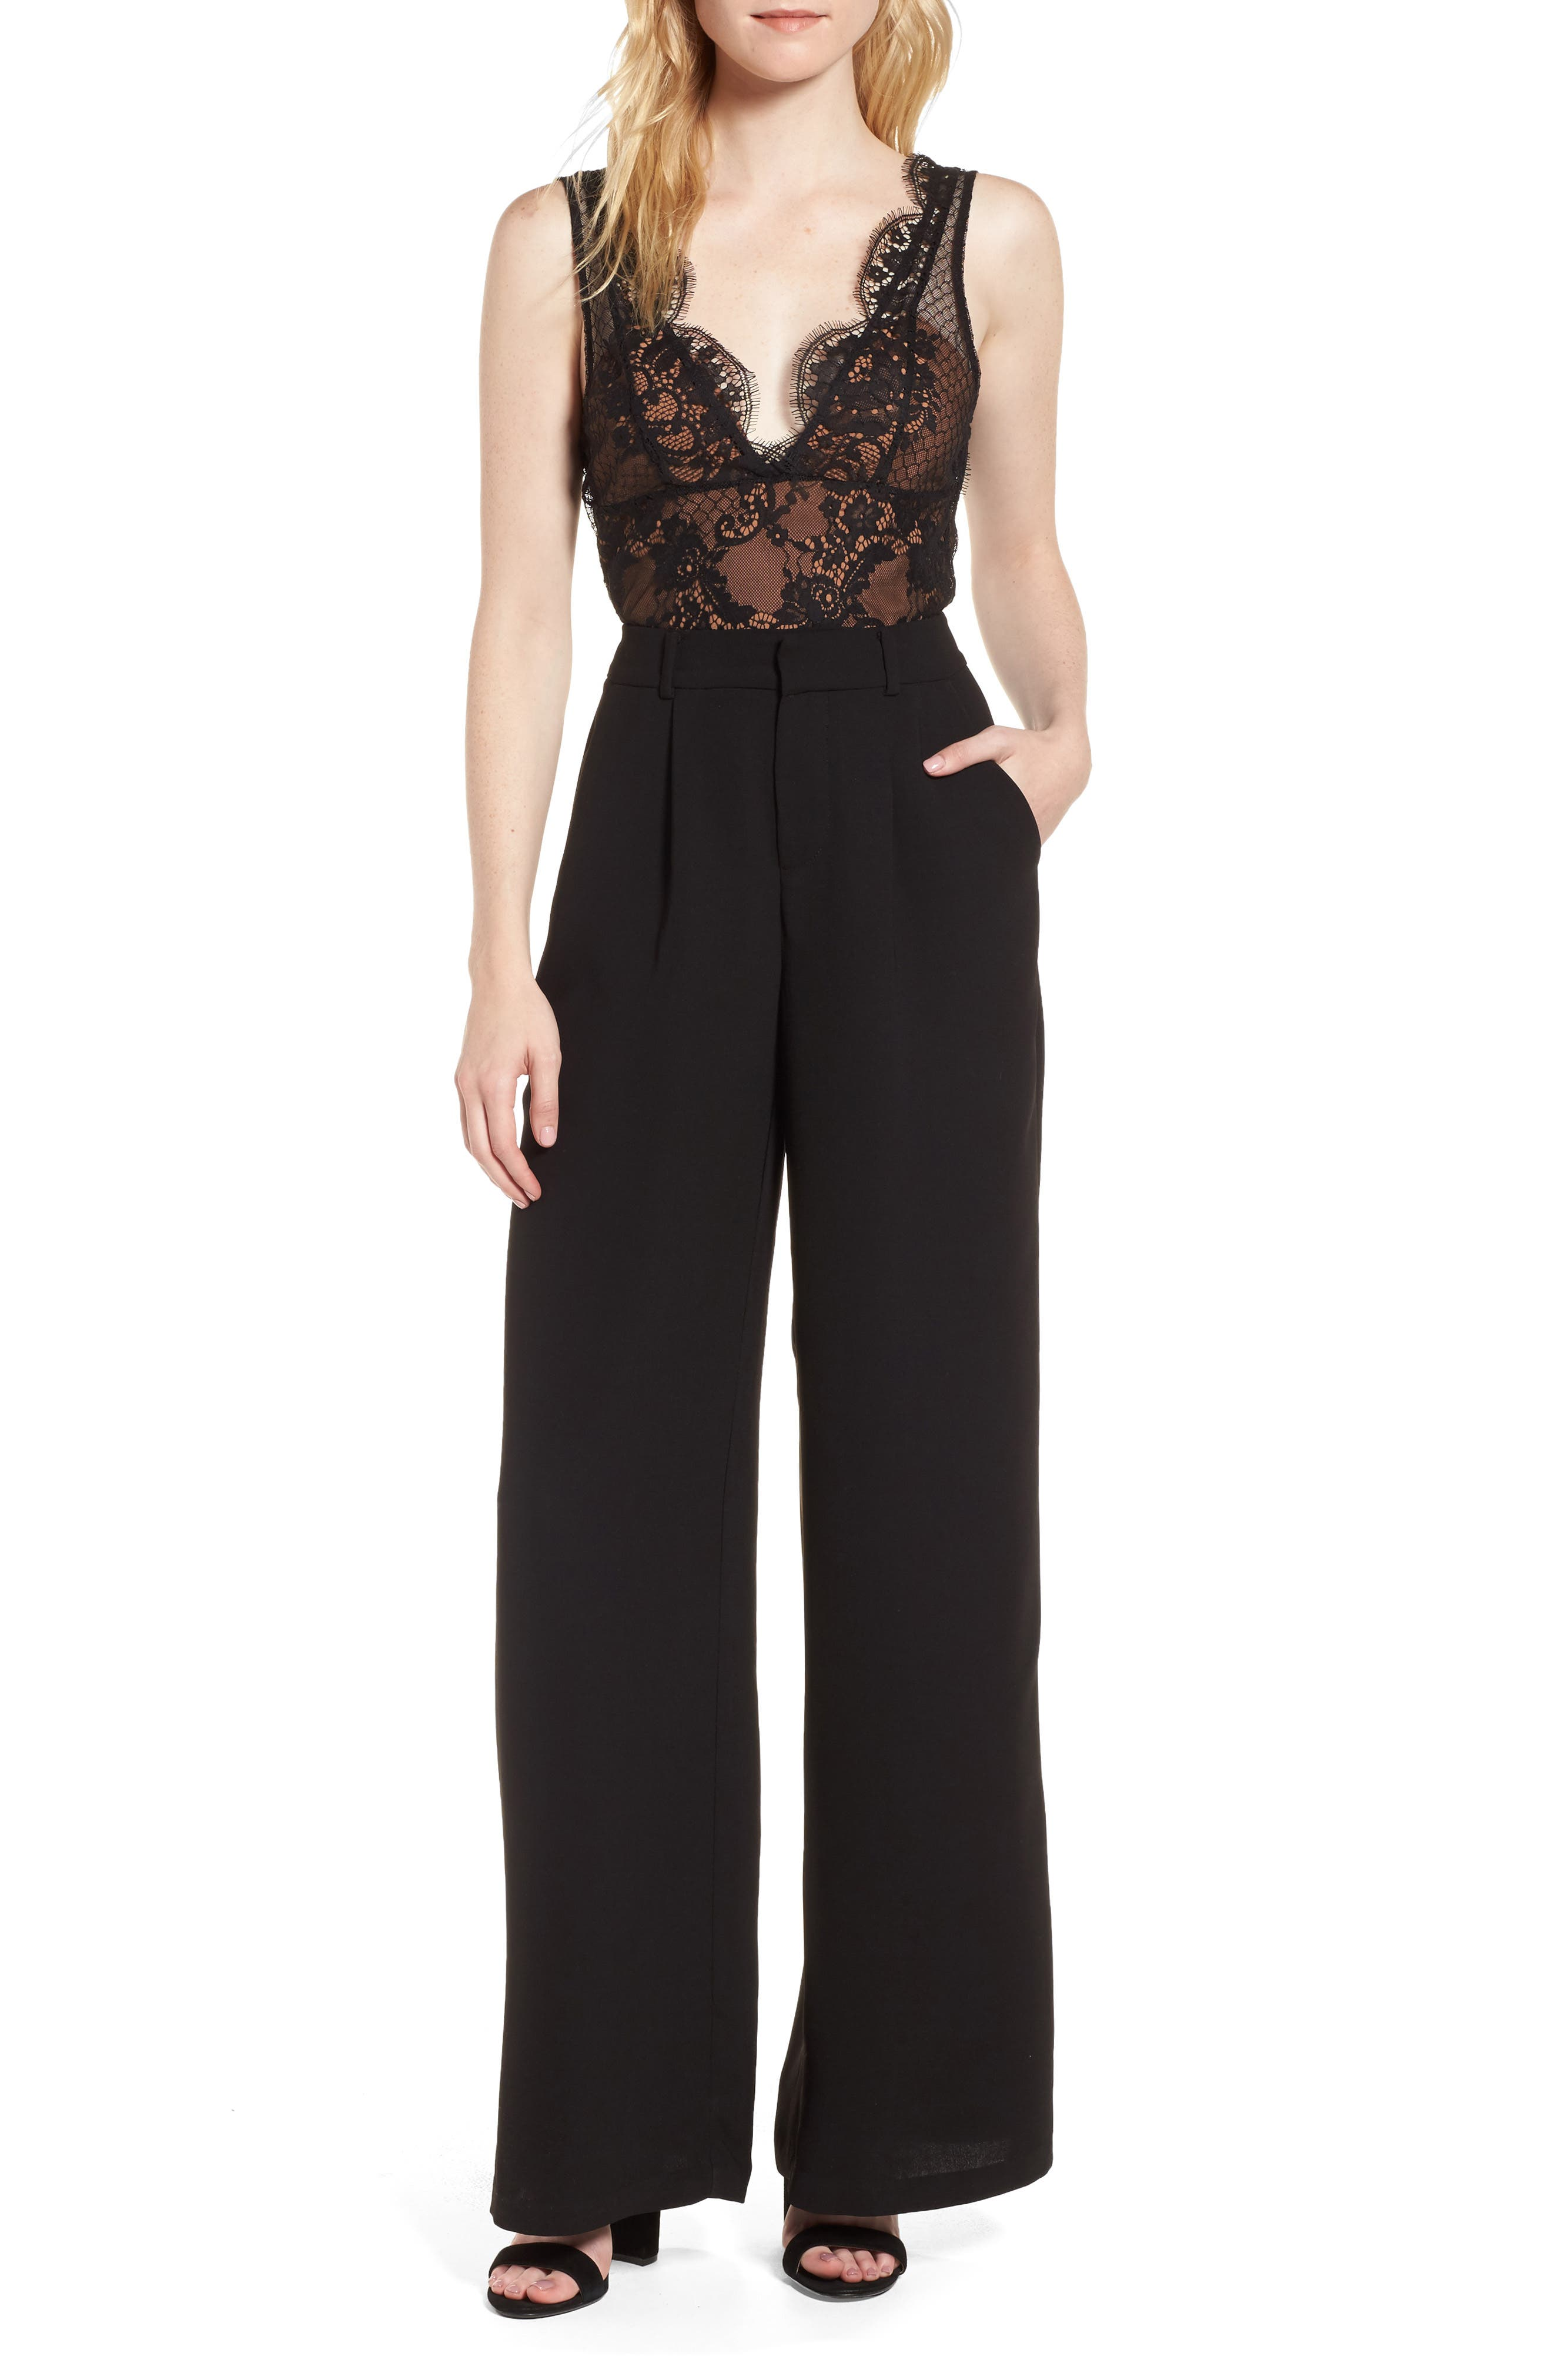 Alternate Image 1 Selected - KENDALL + KYLIE Lace Bodice Jumpsuit